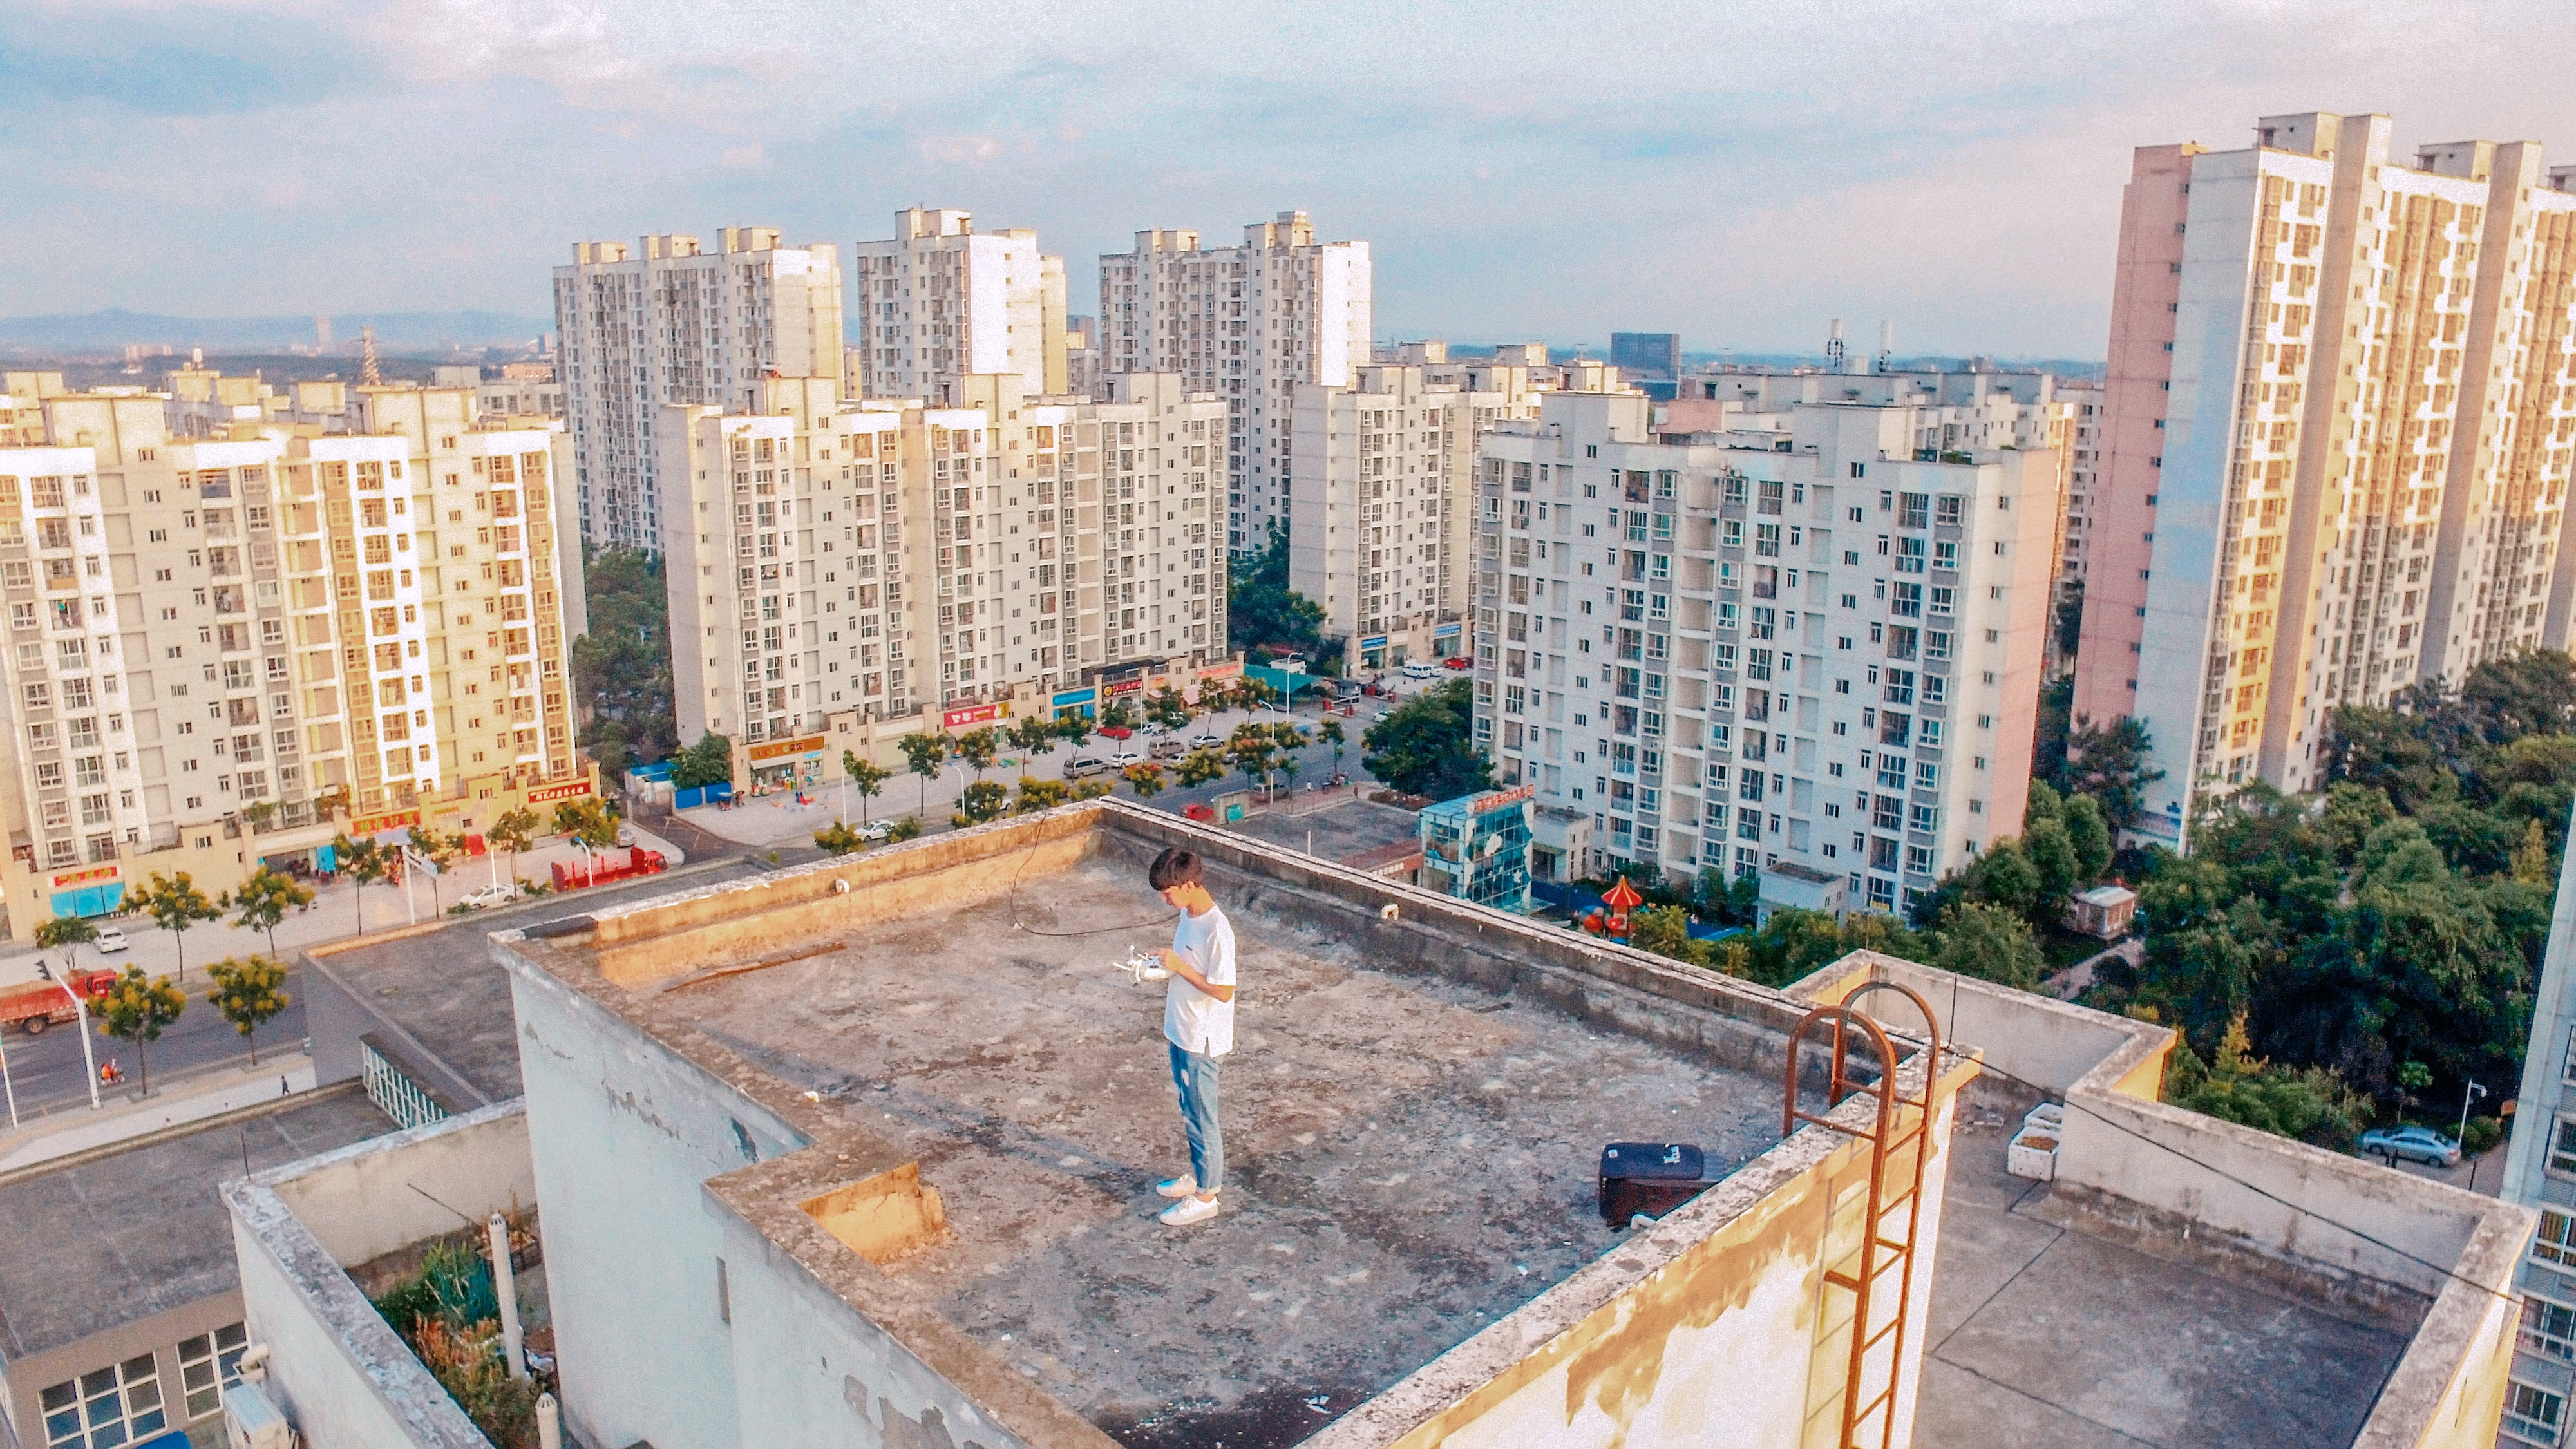 A young man stands on the rooftop which is surrounded by apartment buildings in Gongxingzhen.